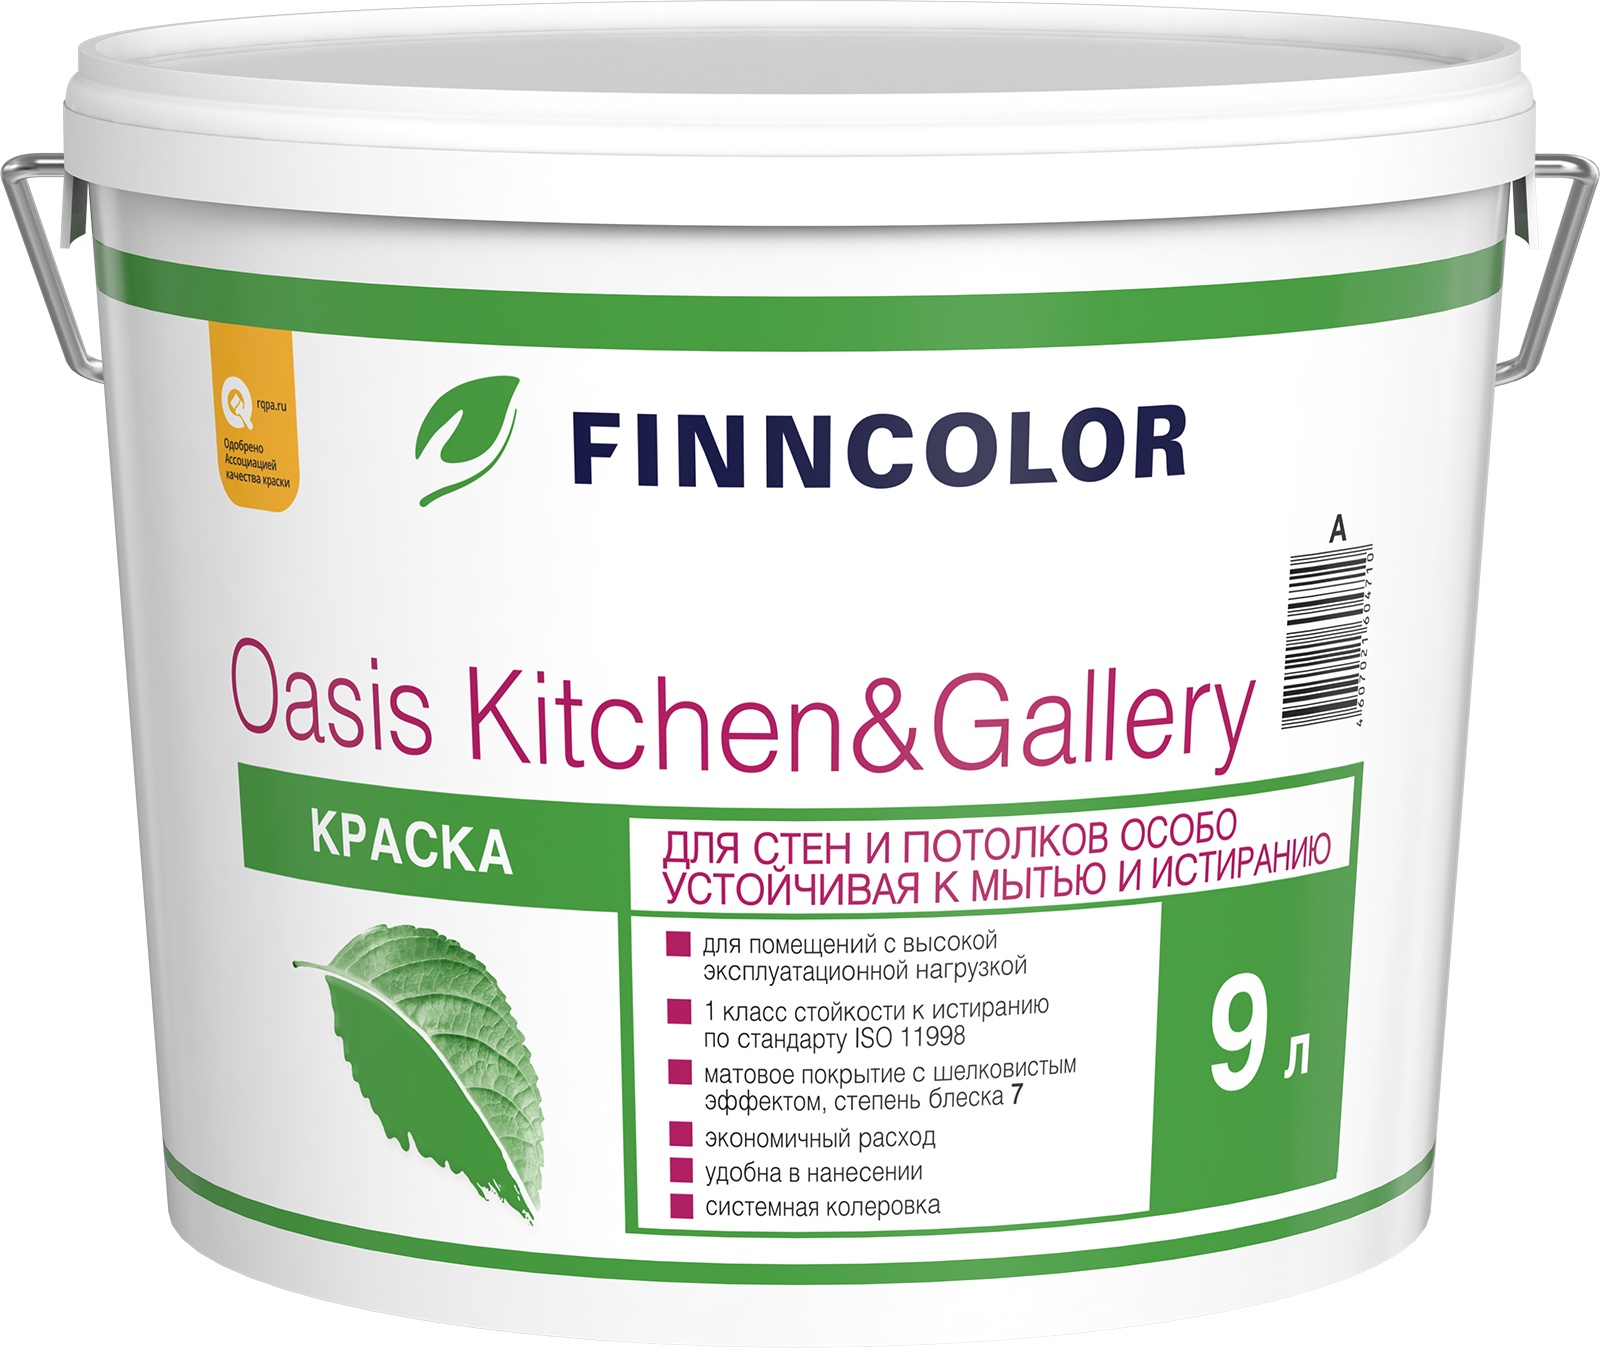 картинка Finncolor Oasis Kitchen&Gallery